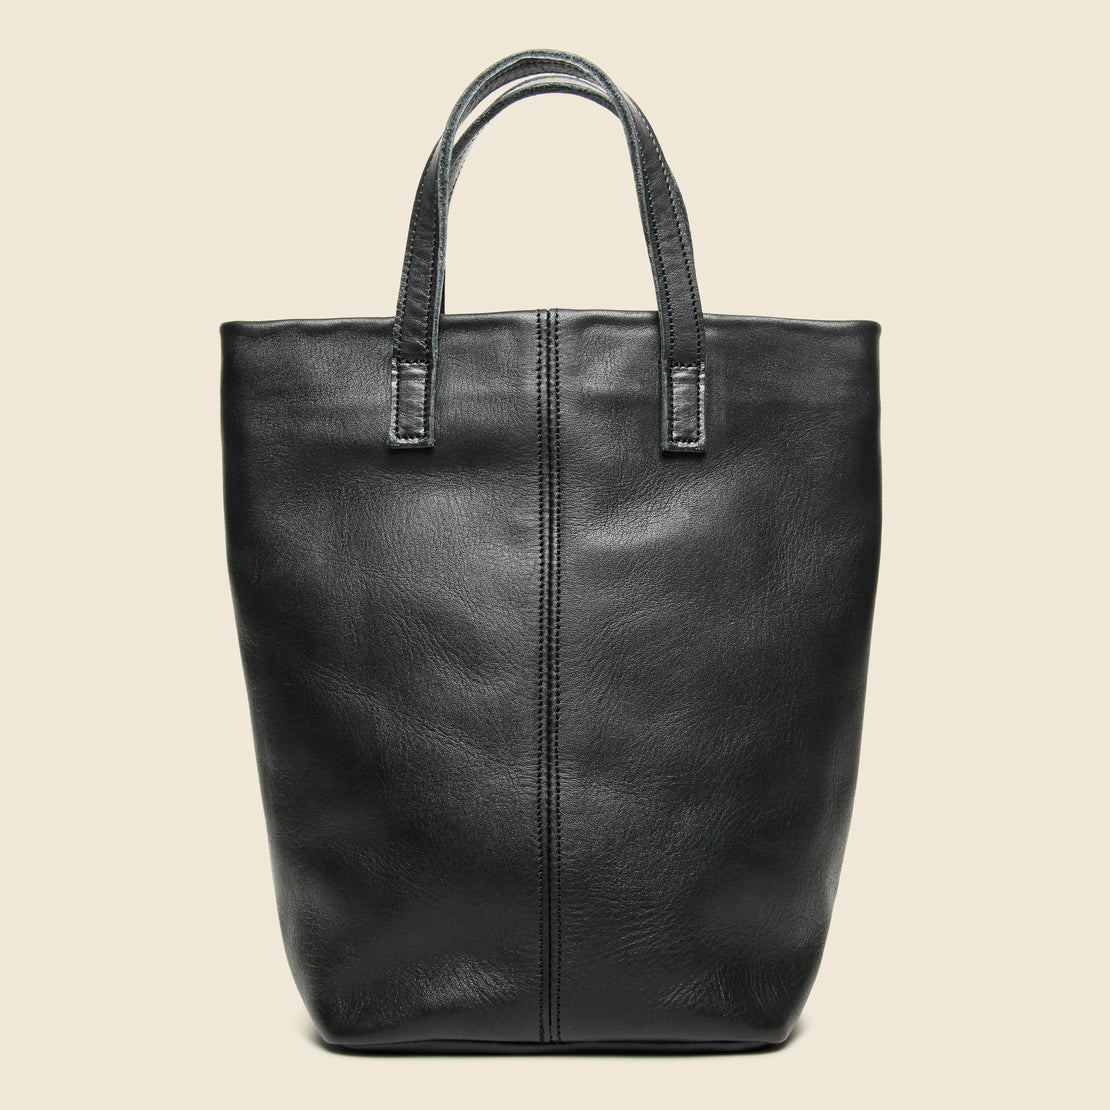 Small Barracas Leather Tote Bag - Black